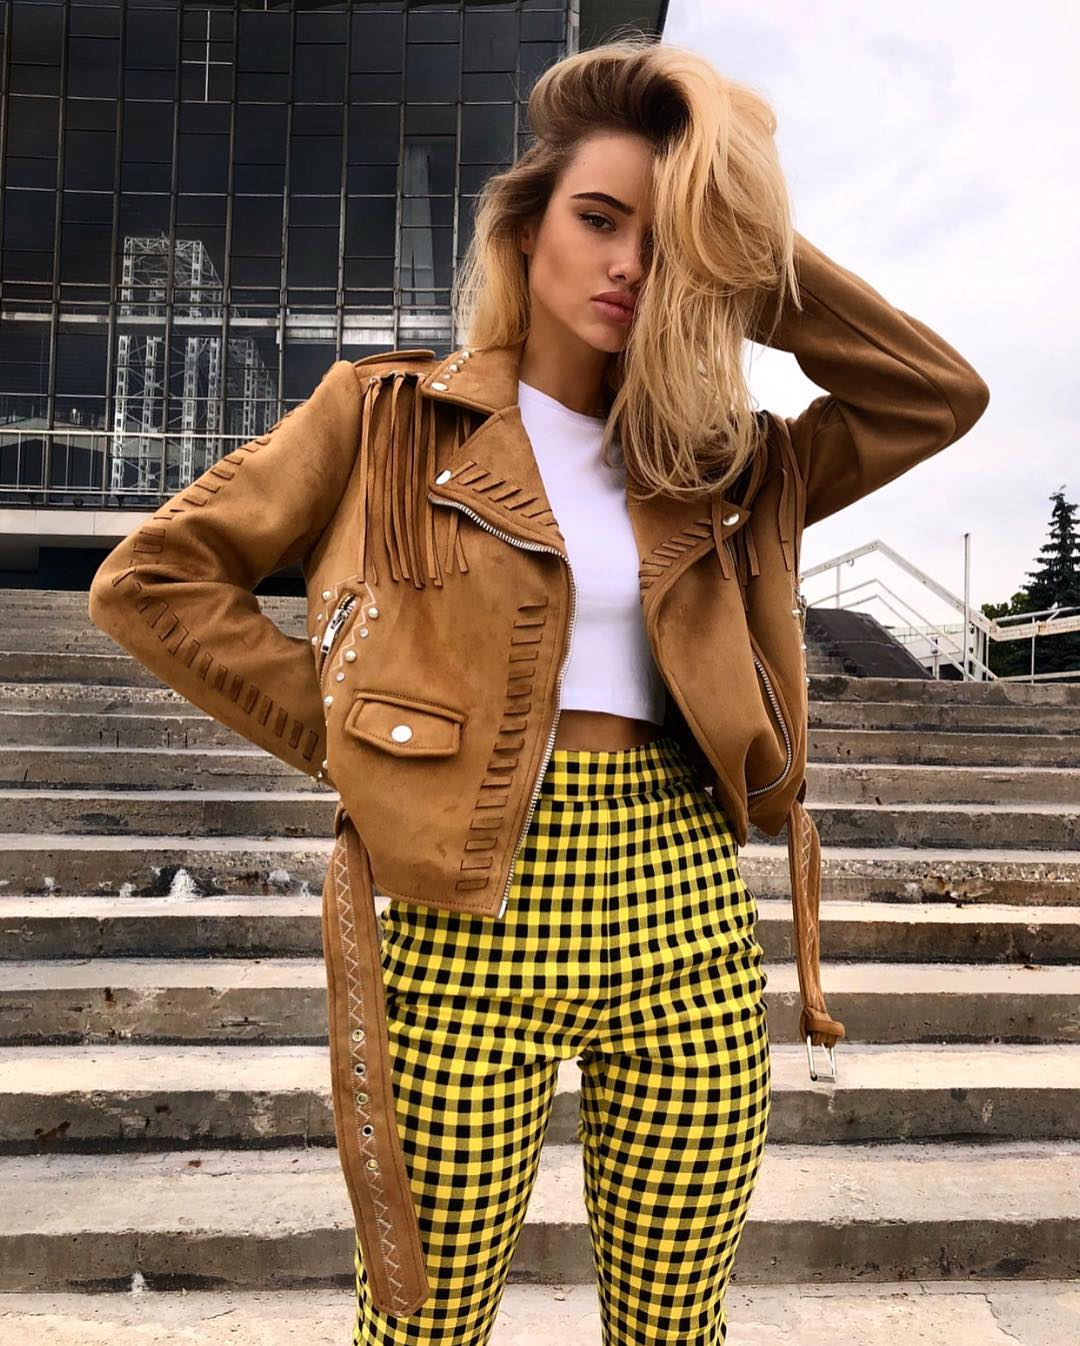 Light Brown Leather Crop Jacket And Gingham Print Pants For Spring 2019